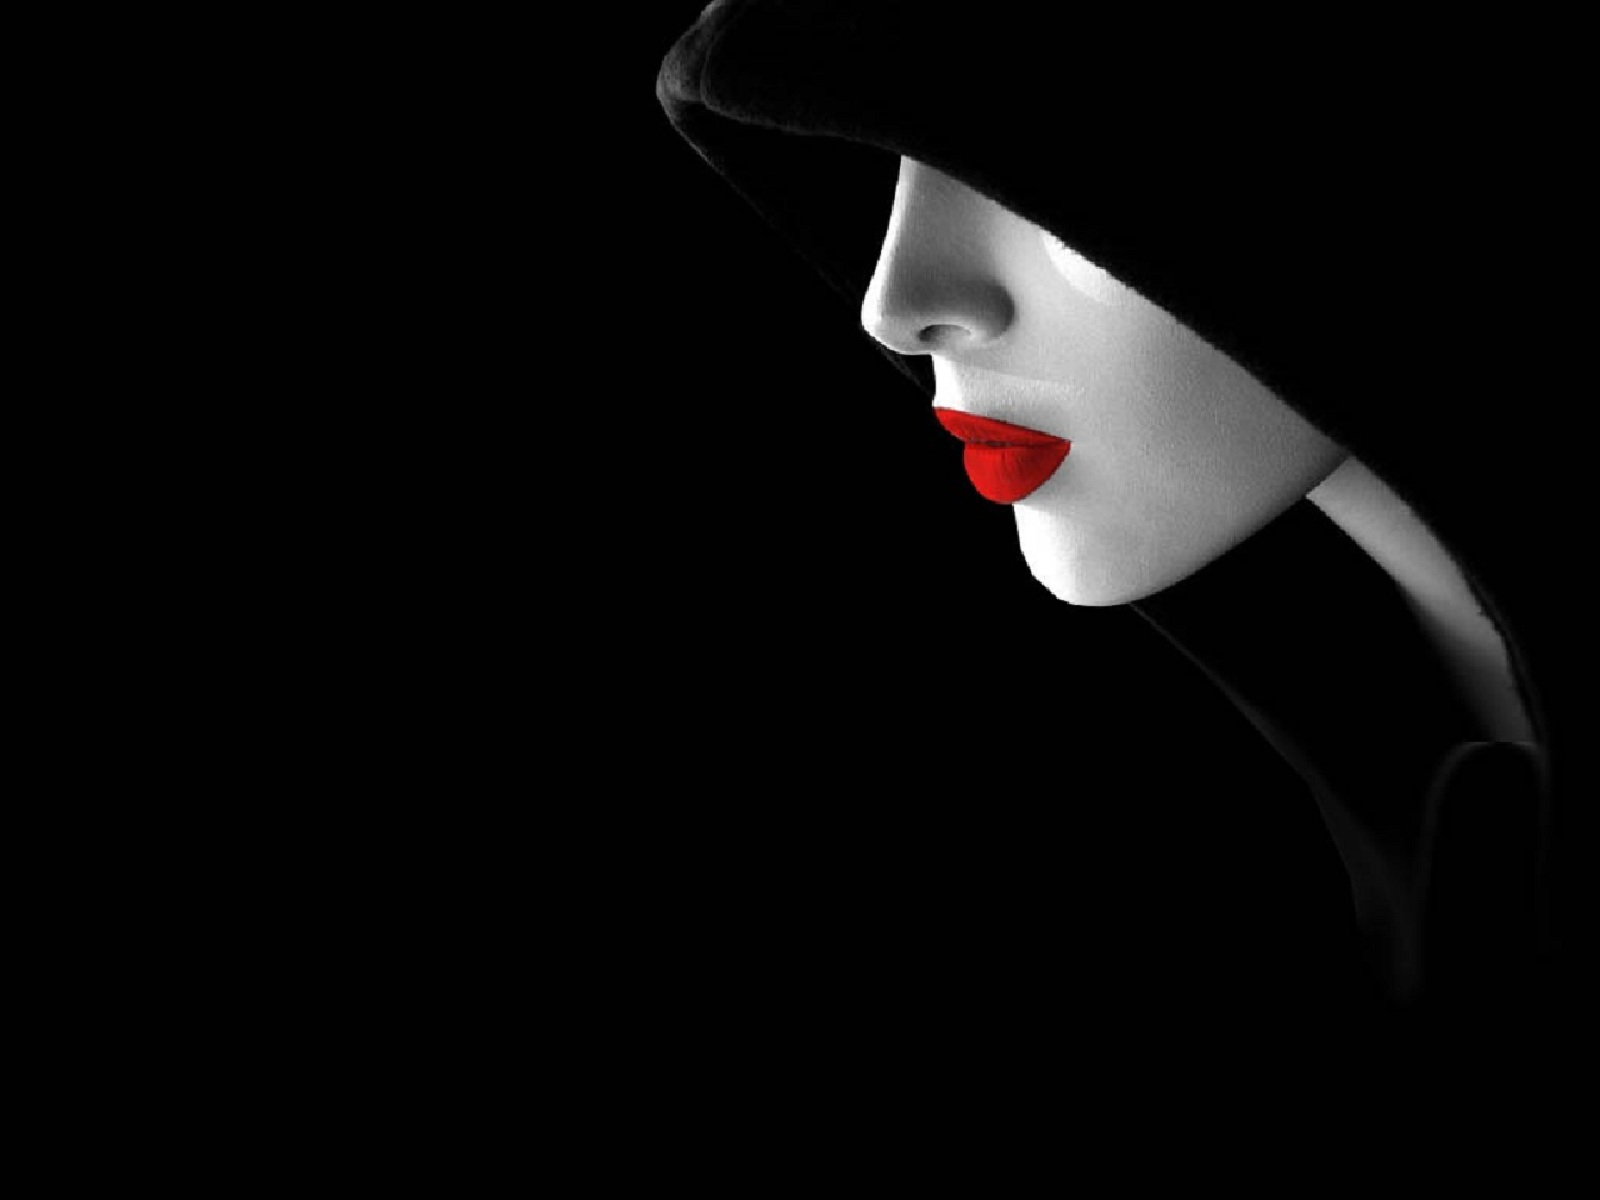 Red lips by paullus23 on deviantart for Black and white 3d wallpaper